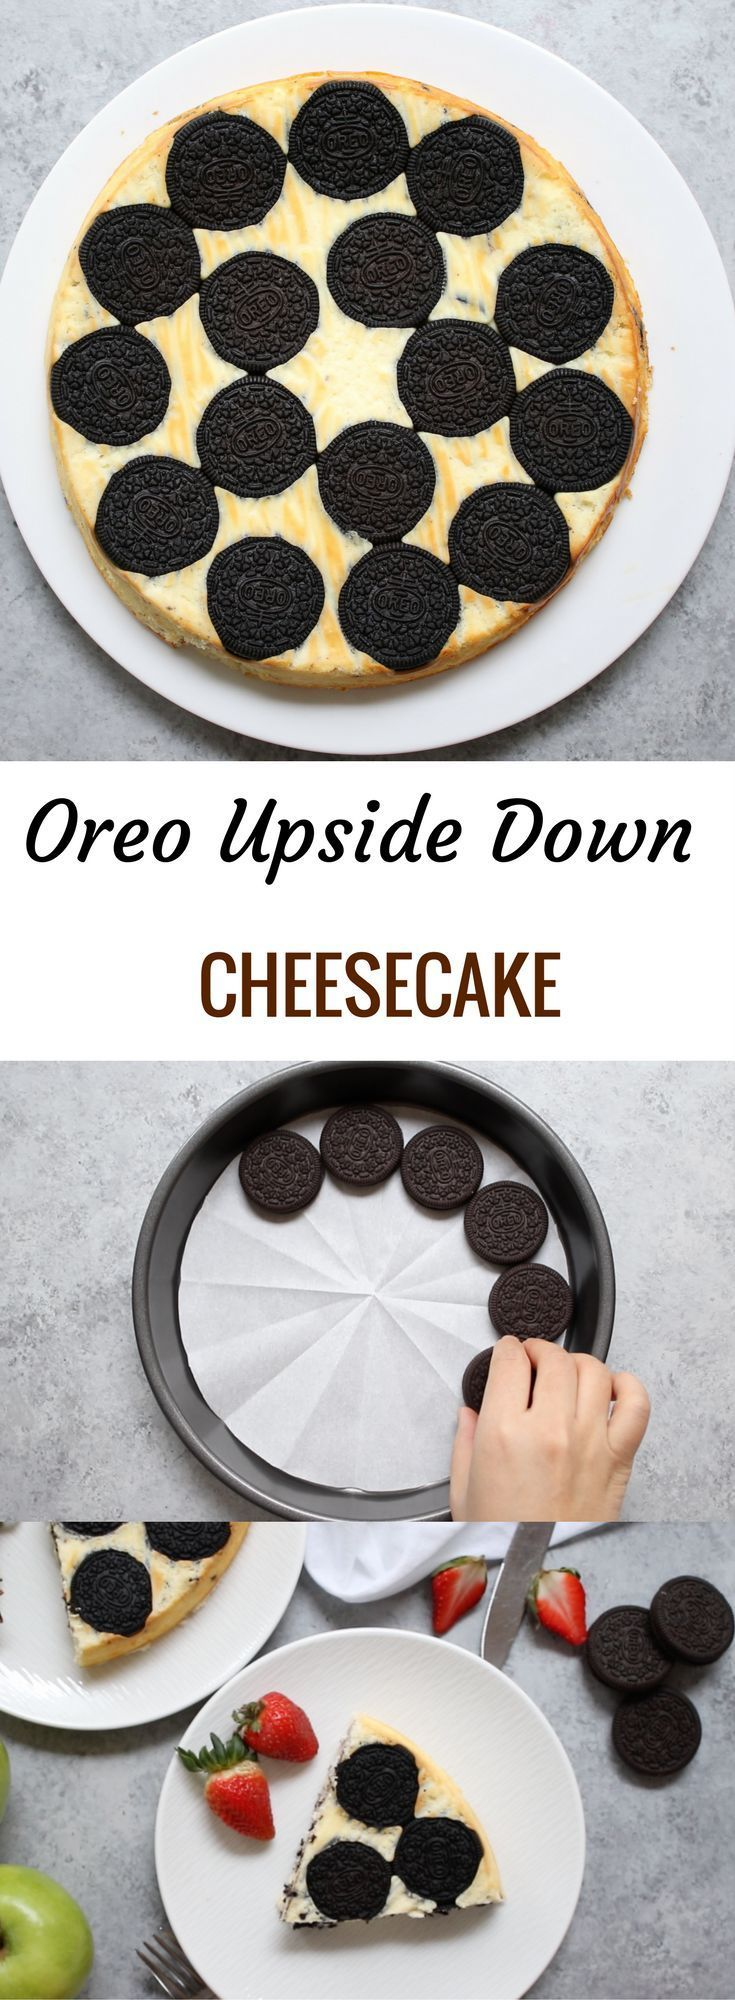 Oreo Upside Down Cheesecake is out of this world yummy. This one is a melt-in-your-mouth dessert that is highly addictive!